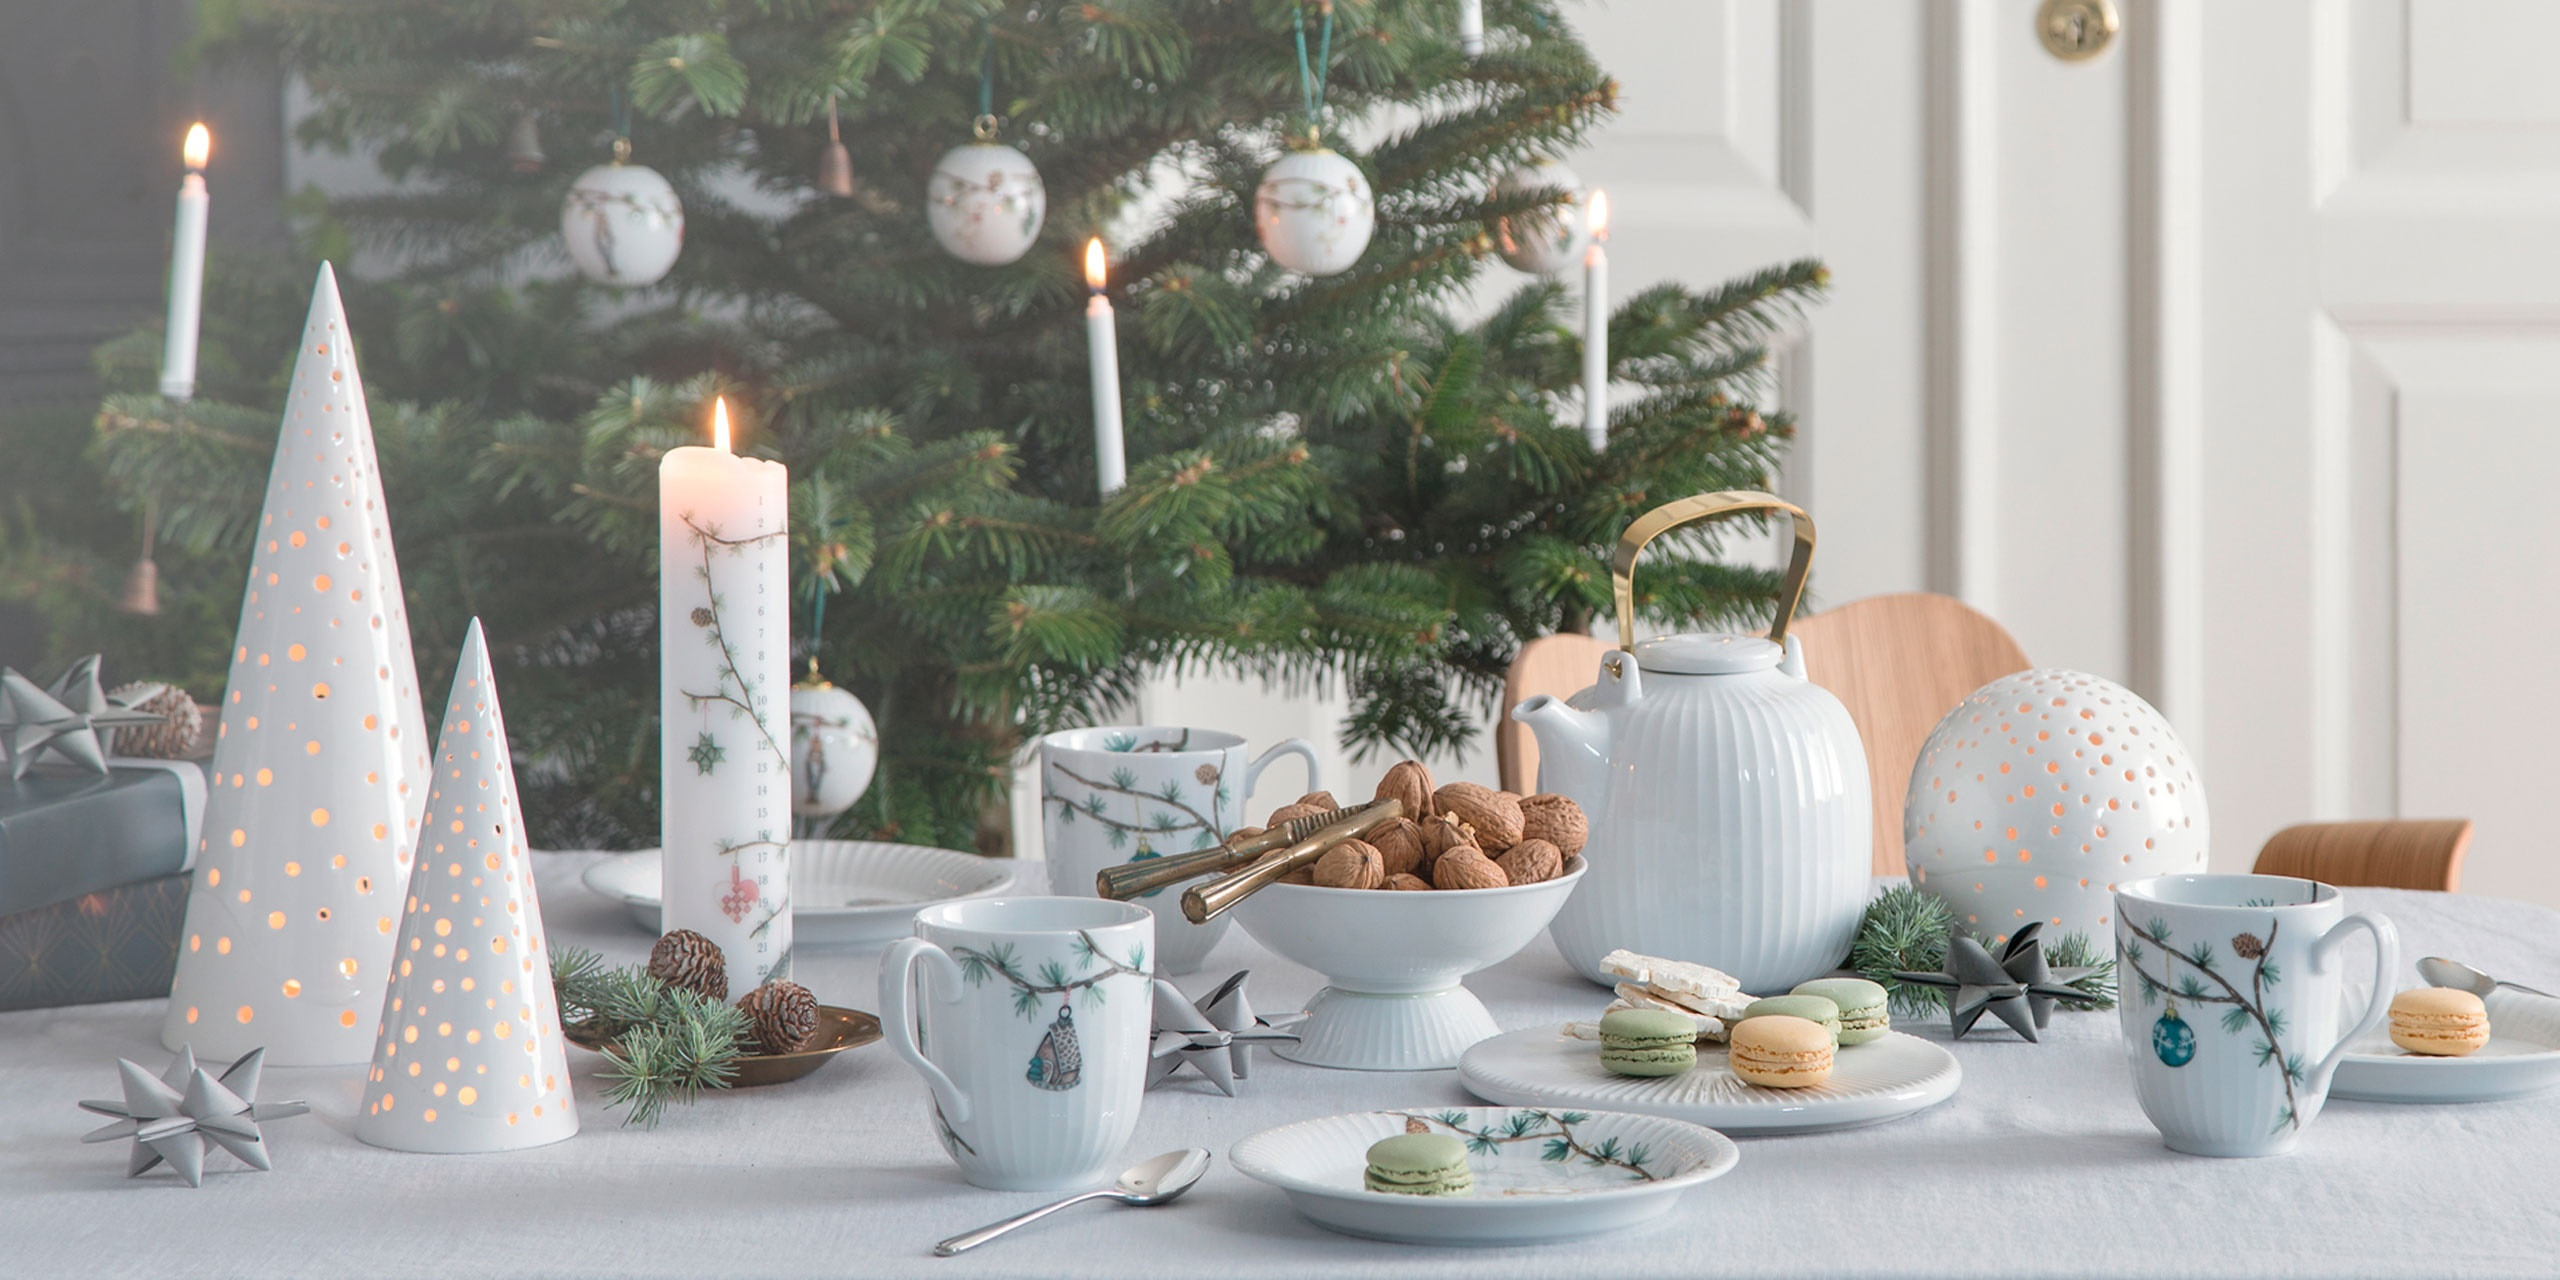 wholesale glass vases international coupon code of experience the inspiring universe of beautiful nordic design throughout christmas spirit with hammersha˜i